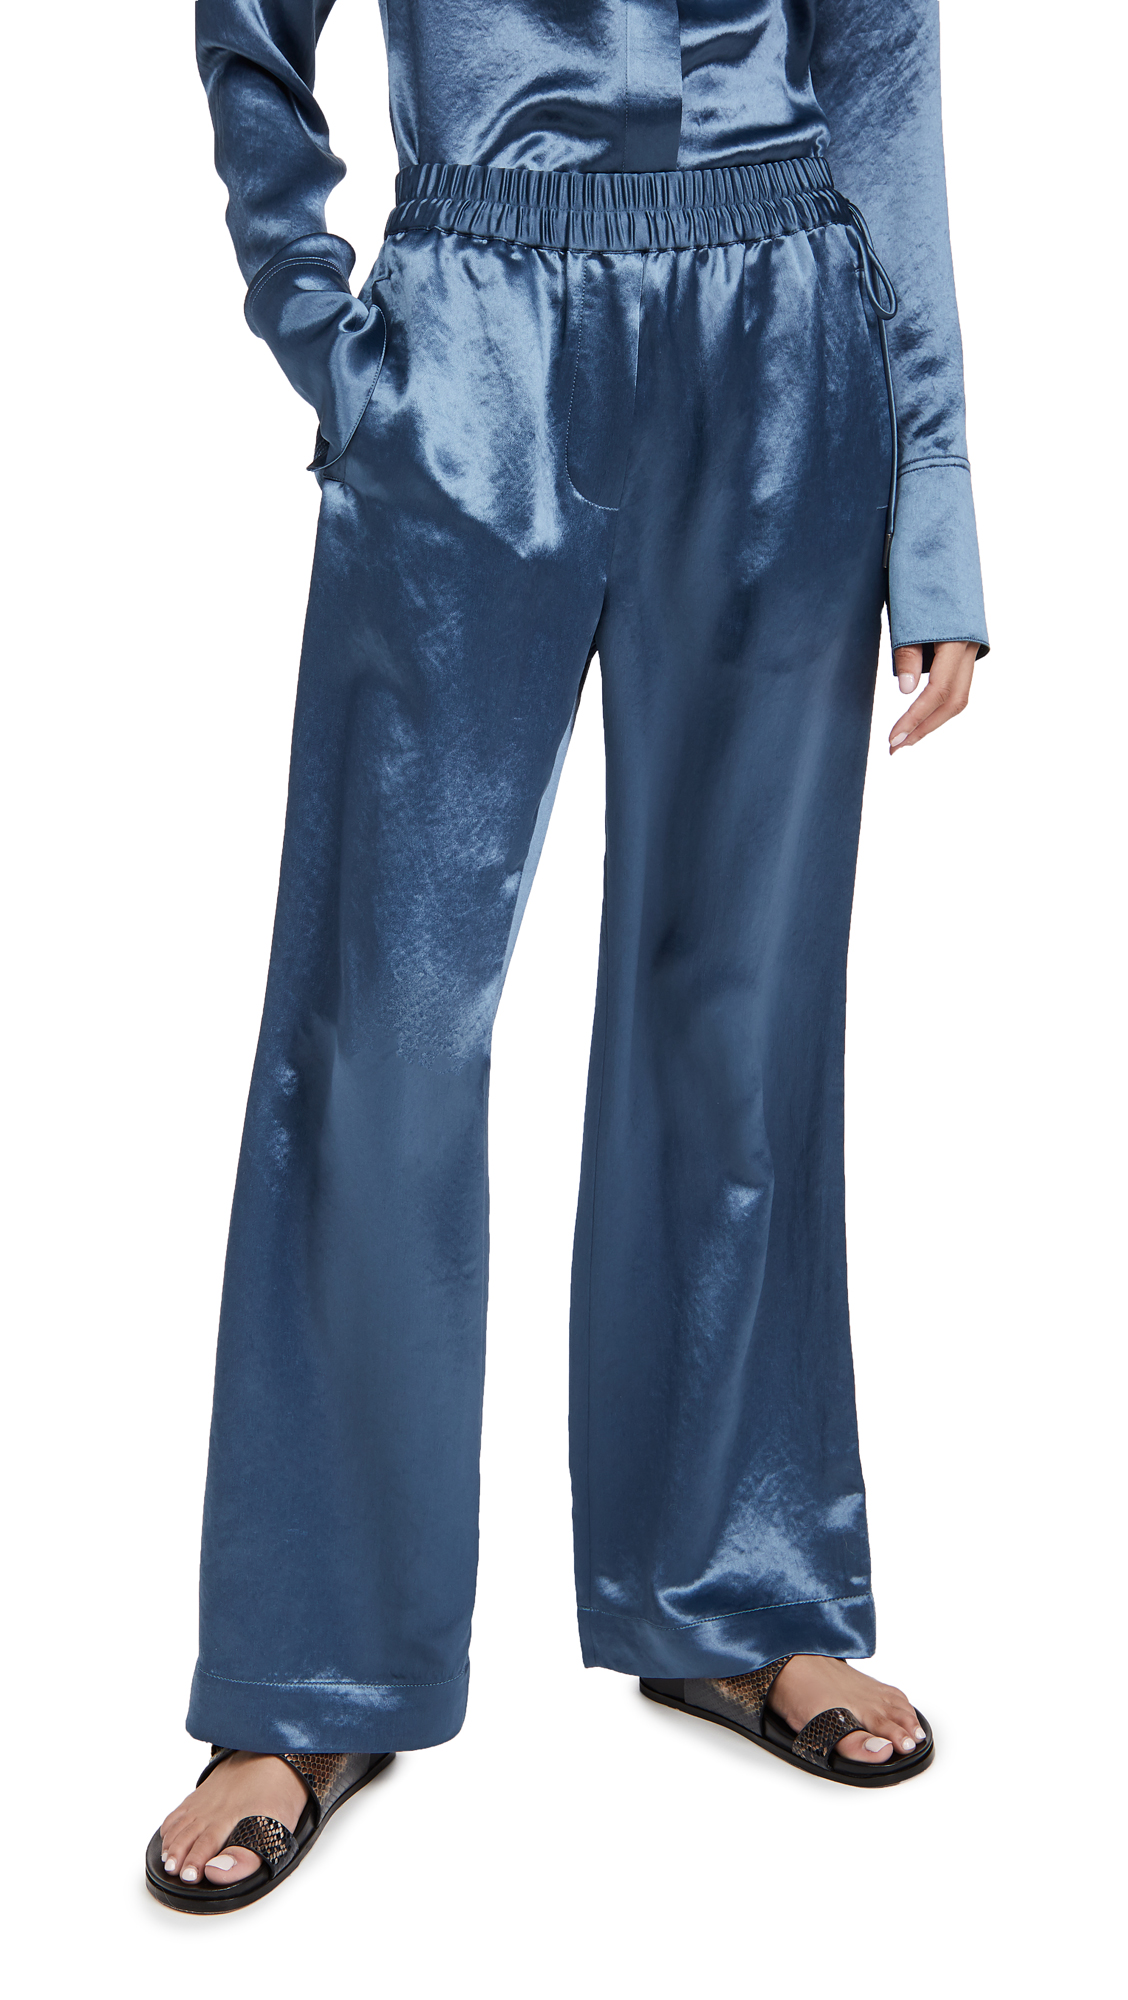 Acne Studios Satin Trousers